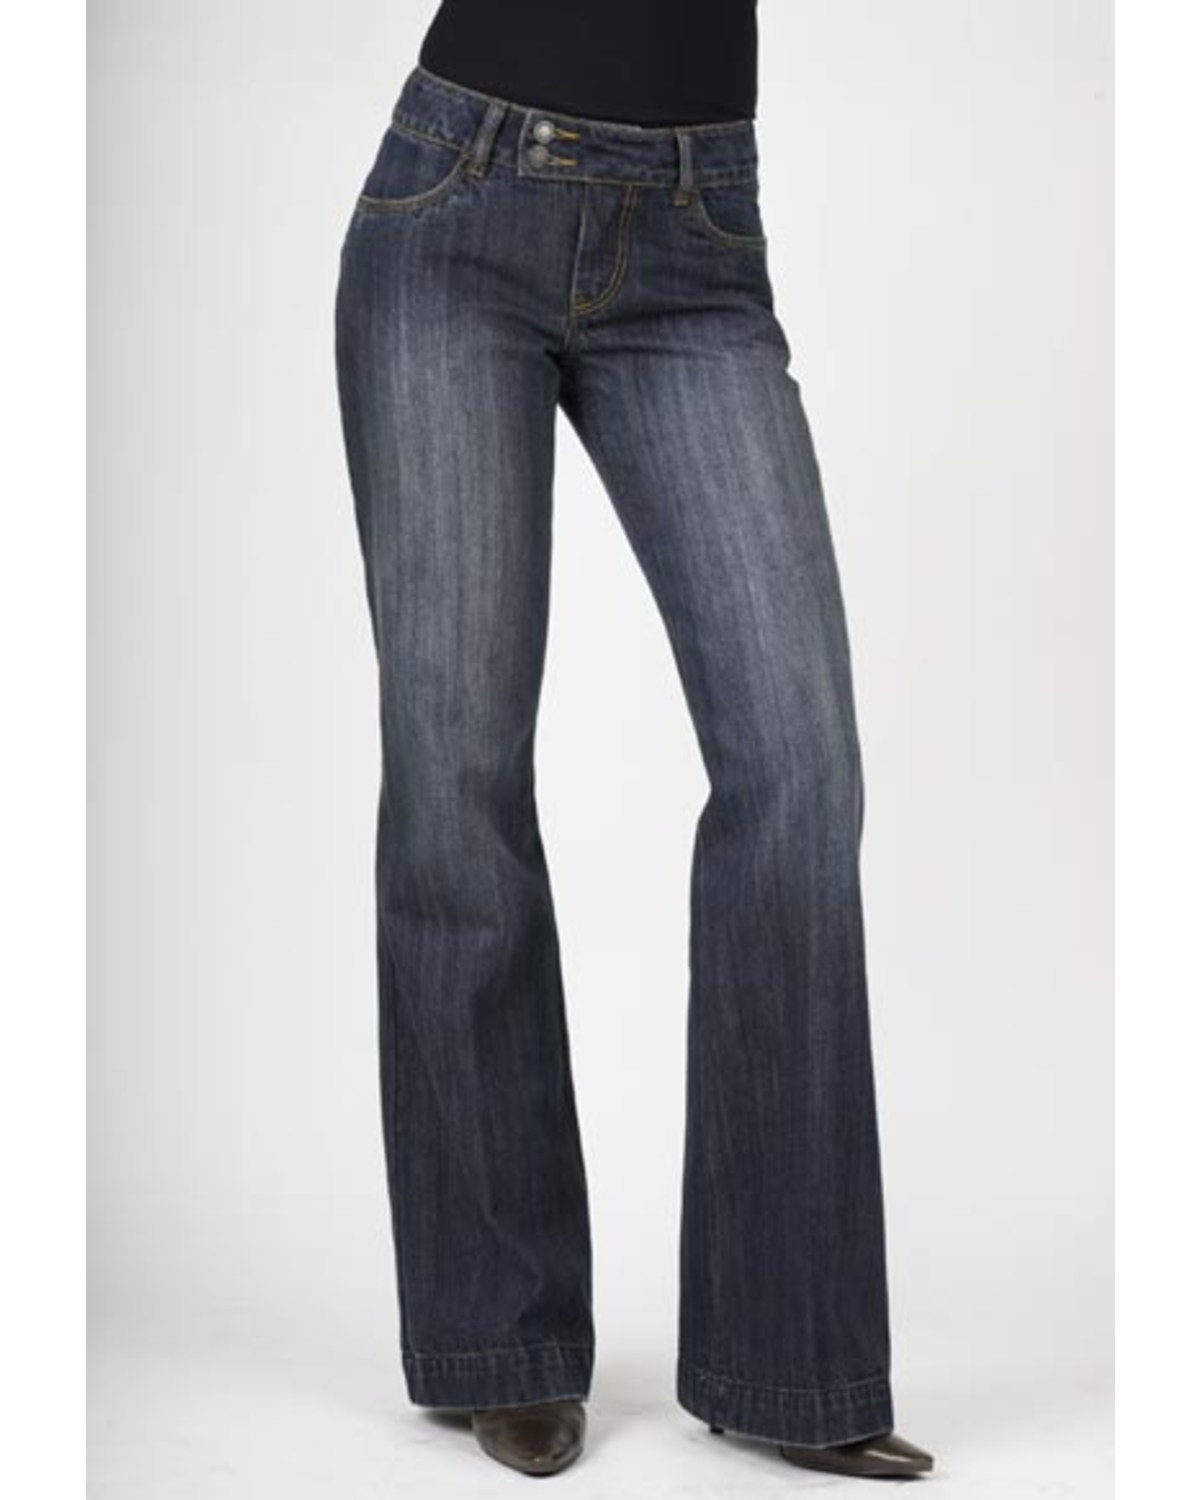 Stetson Womenu0026#39;s 214 Fit City Dark Indigo Trouser Jeans | Boot Barn